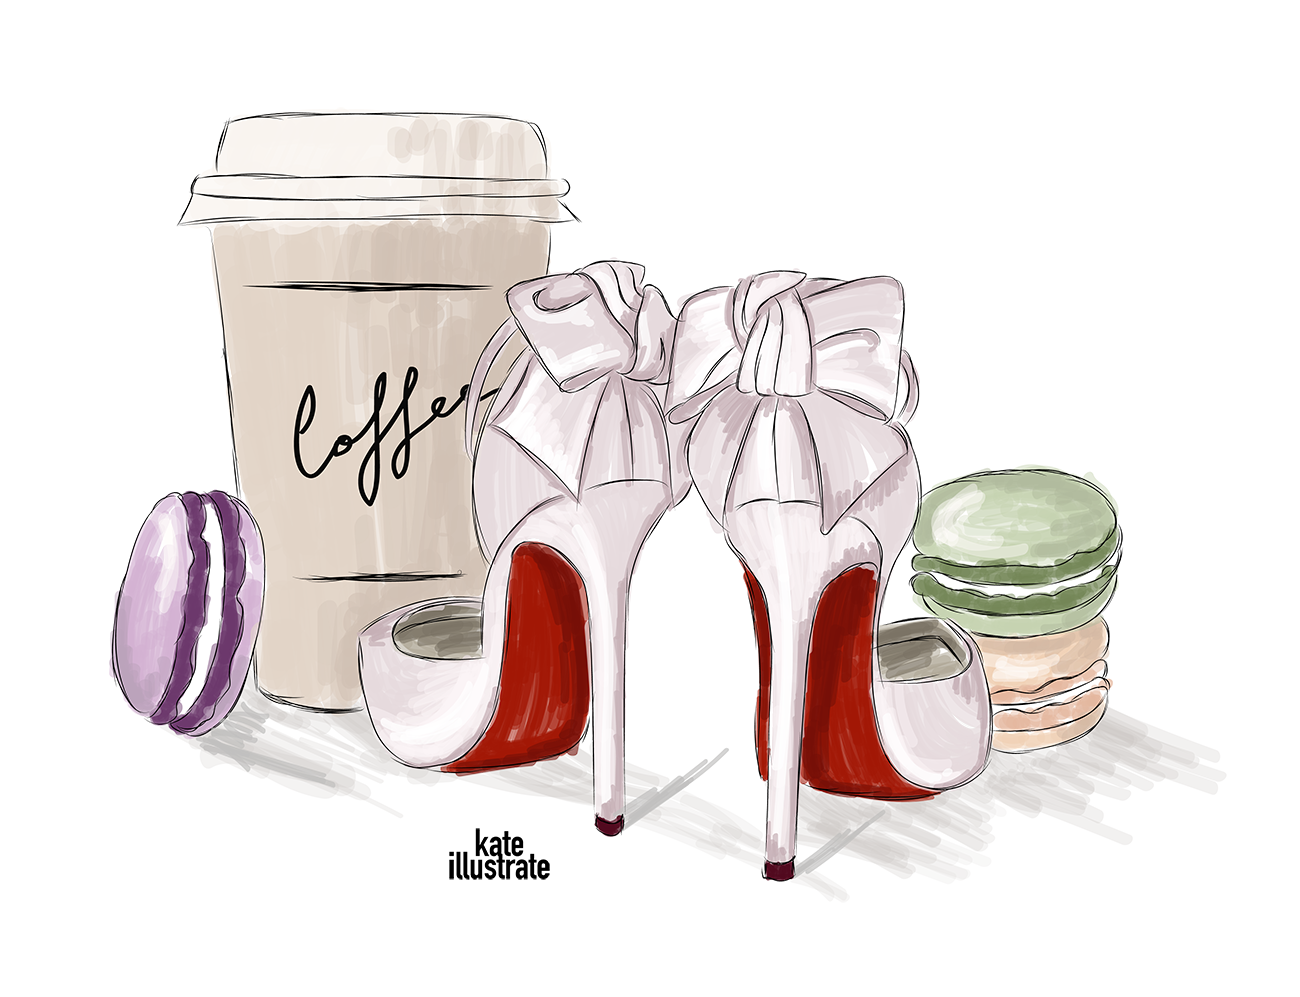 fashion-illustration-kateillustrate-shoes-coffee-macarons